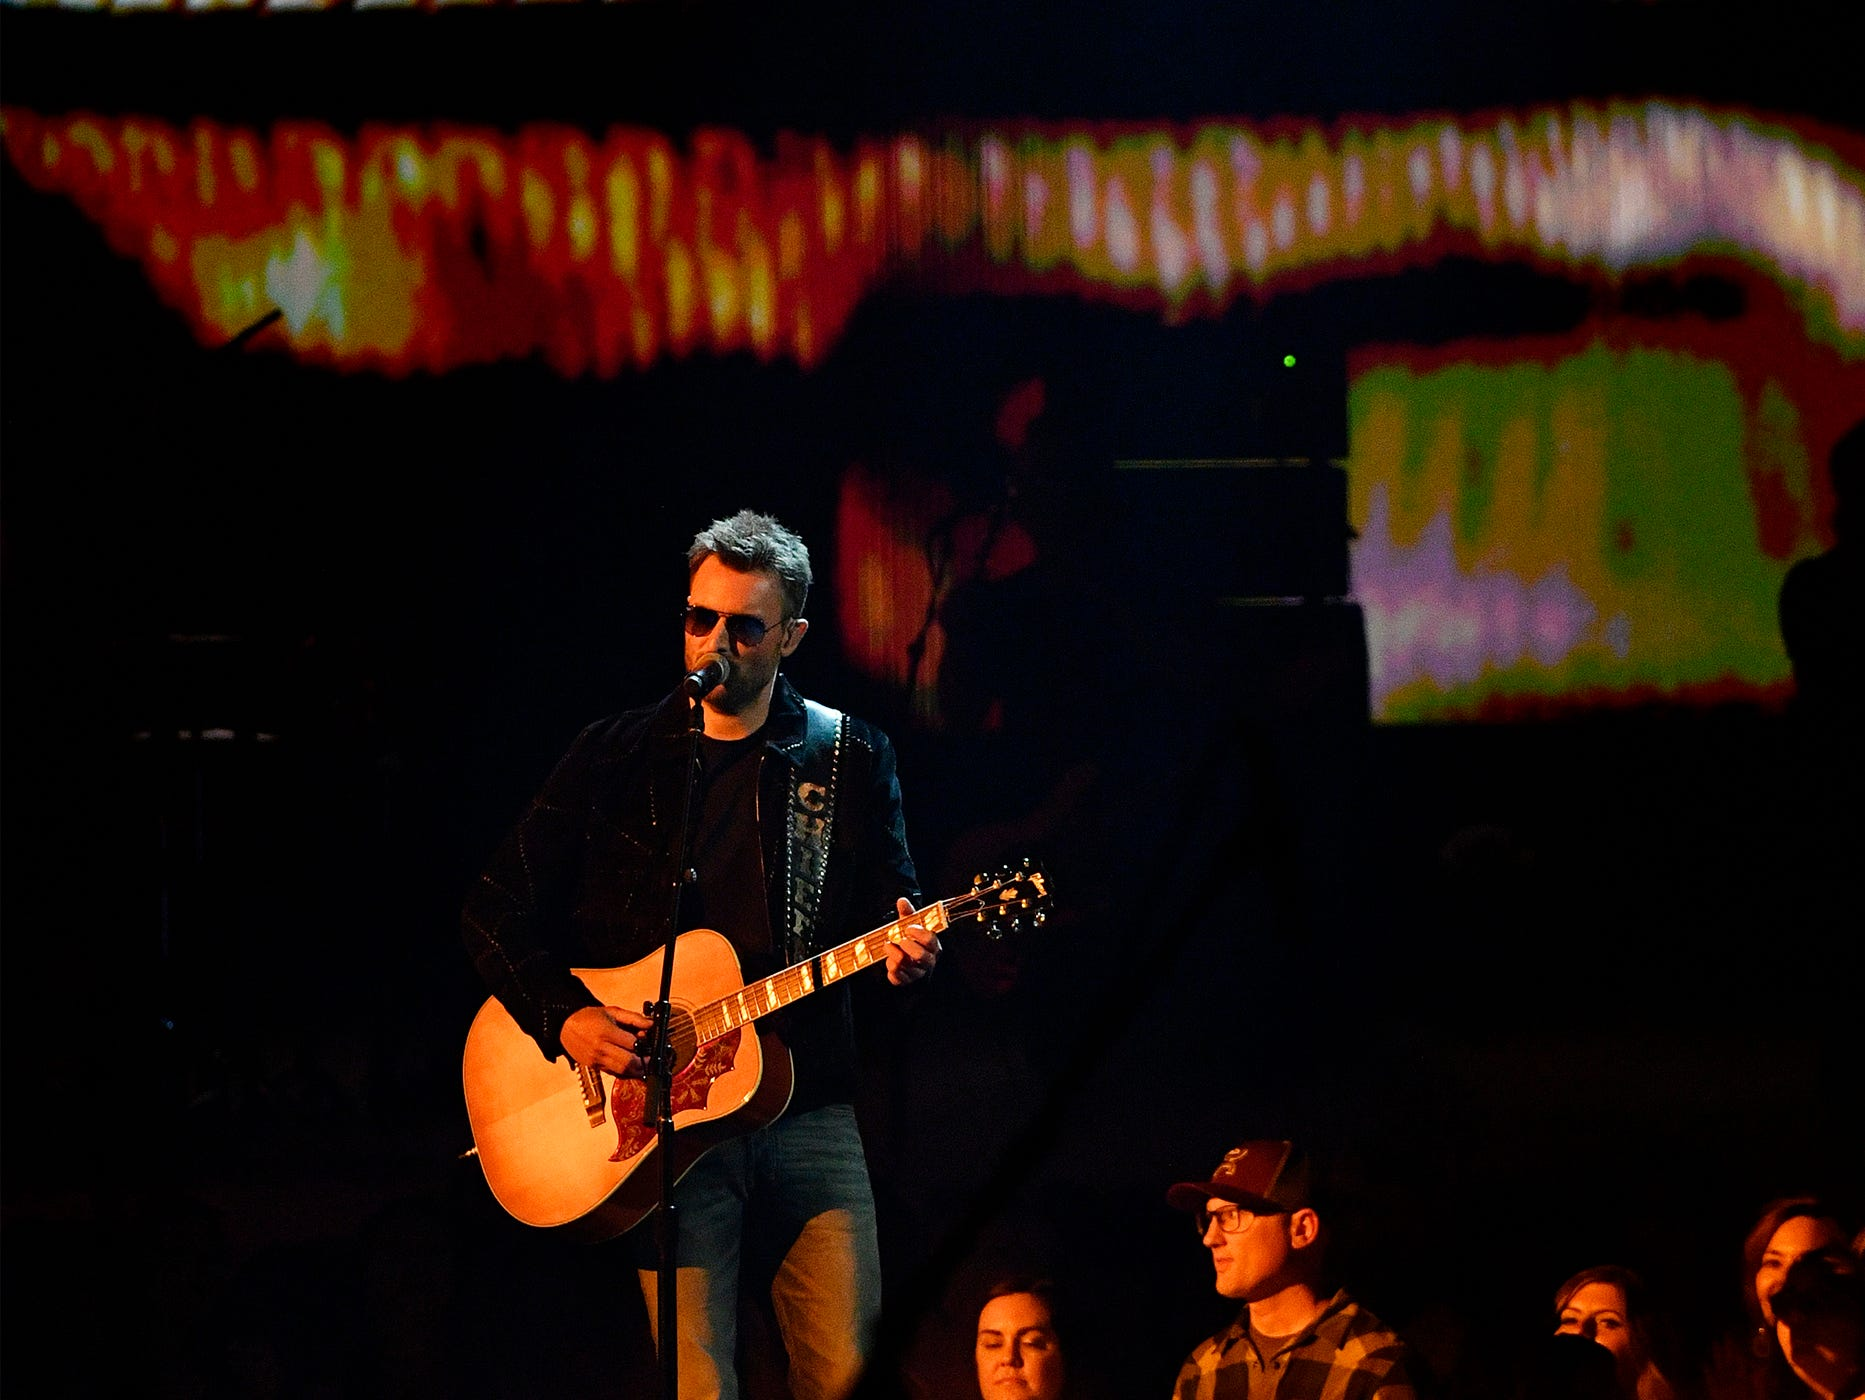 Eric Church performs during the 54TH Academy of Country Music Awards Sunday, April 7, 2019, in Las Vegas, Nev.